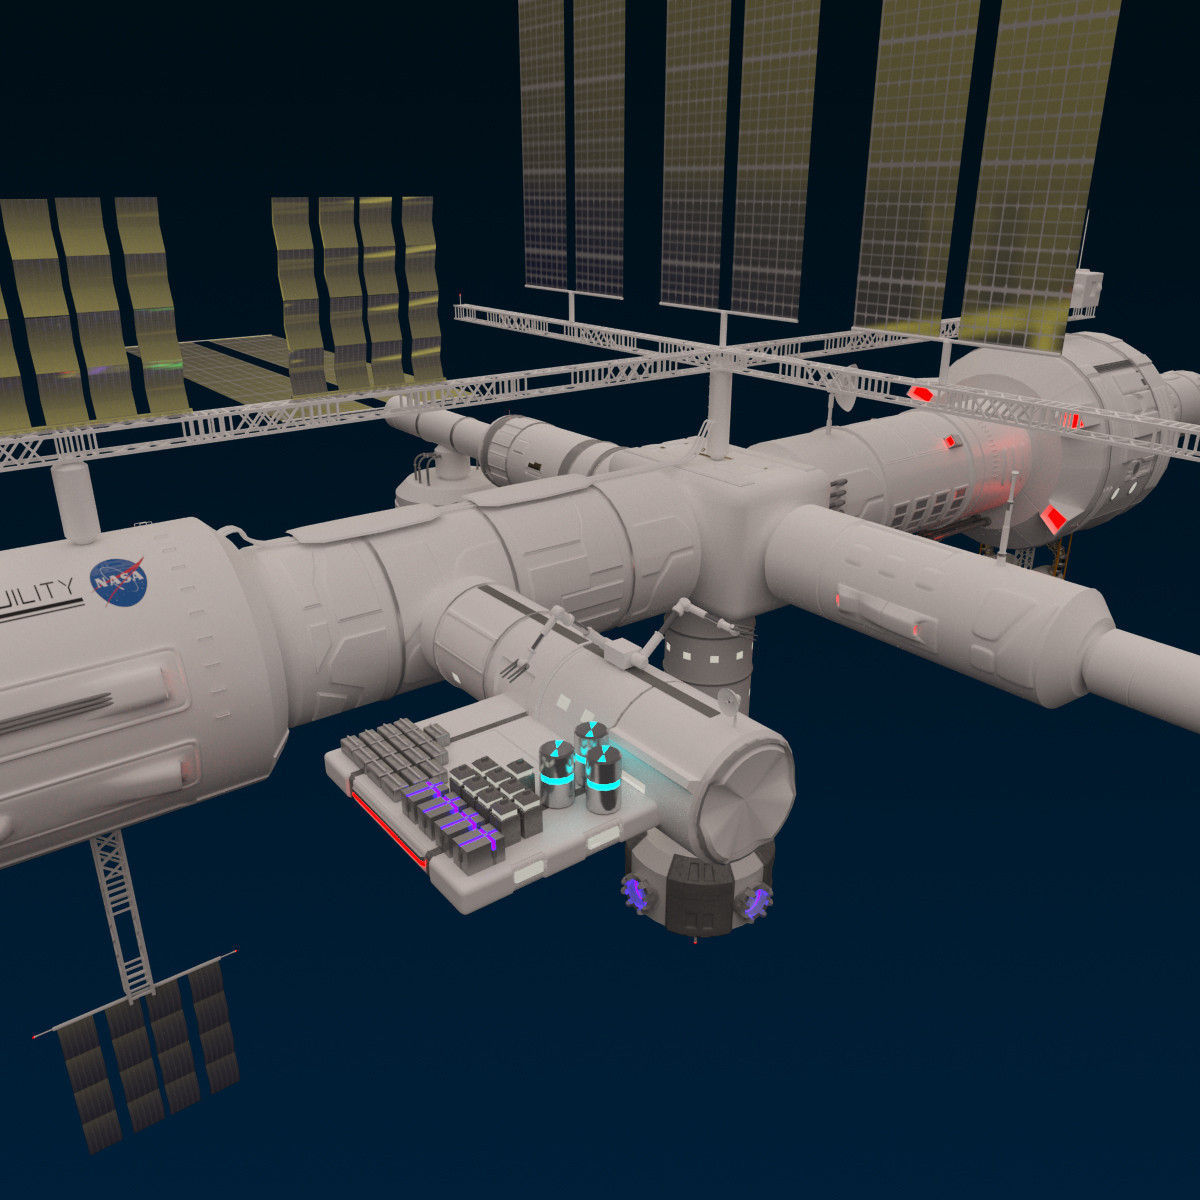 space station 3d models - photo #15